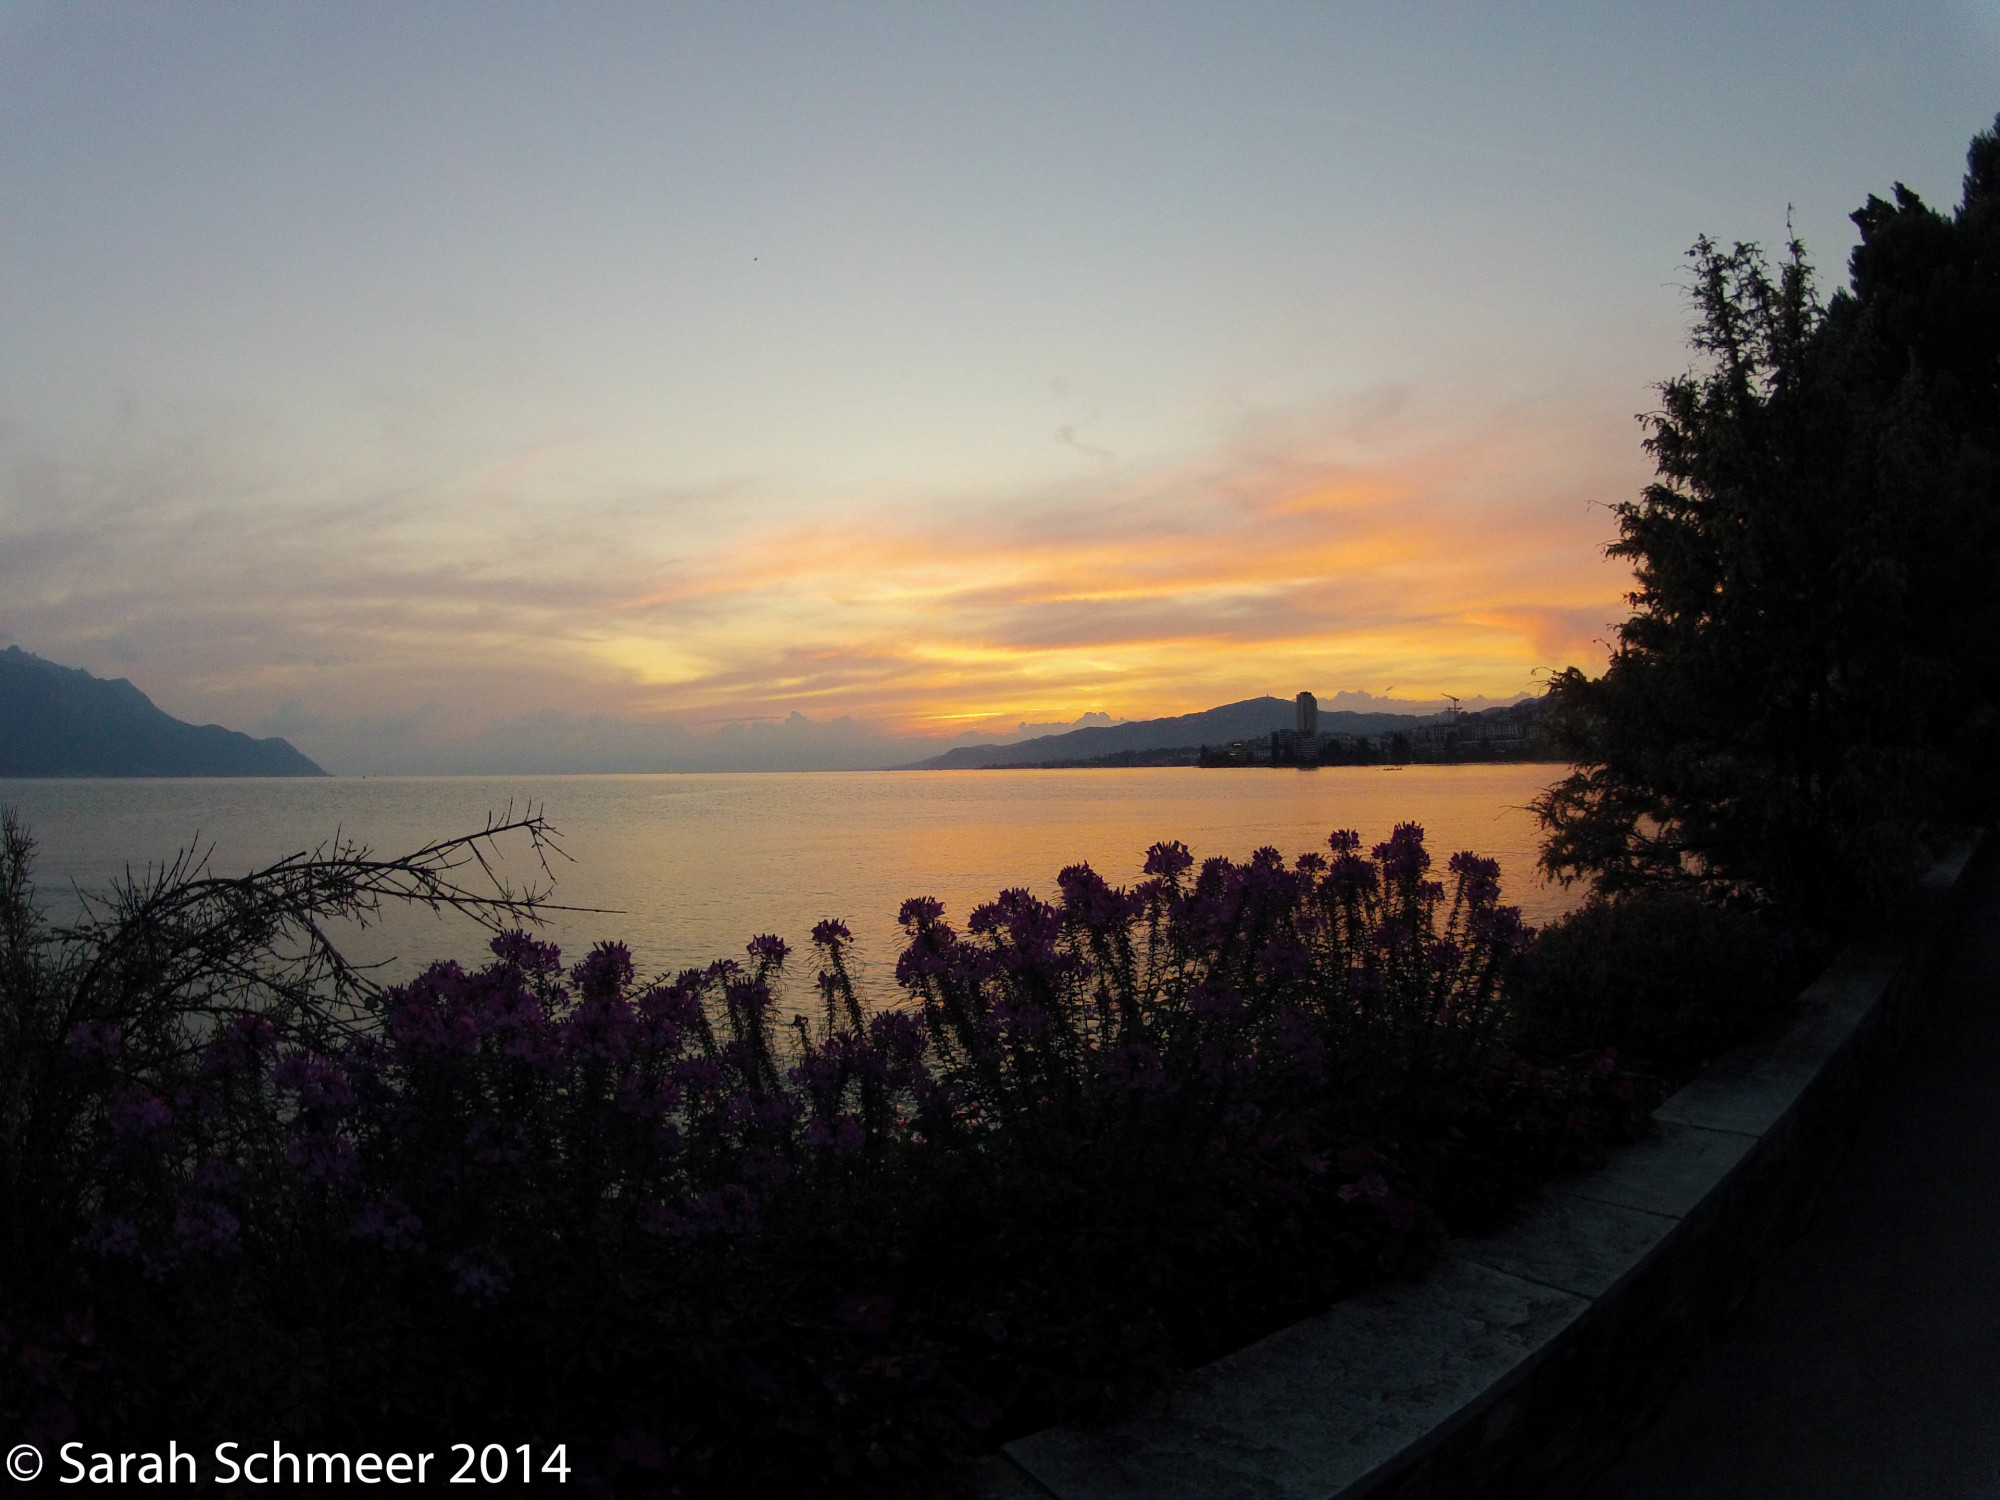 Sunset over Lac Leman and Montreux